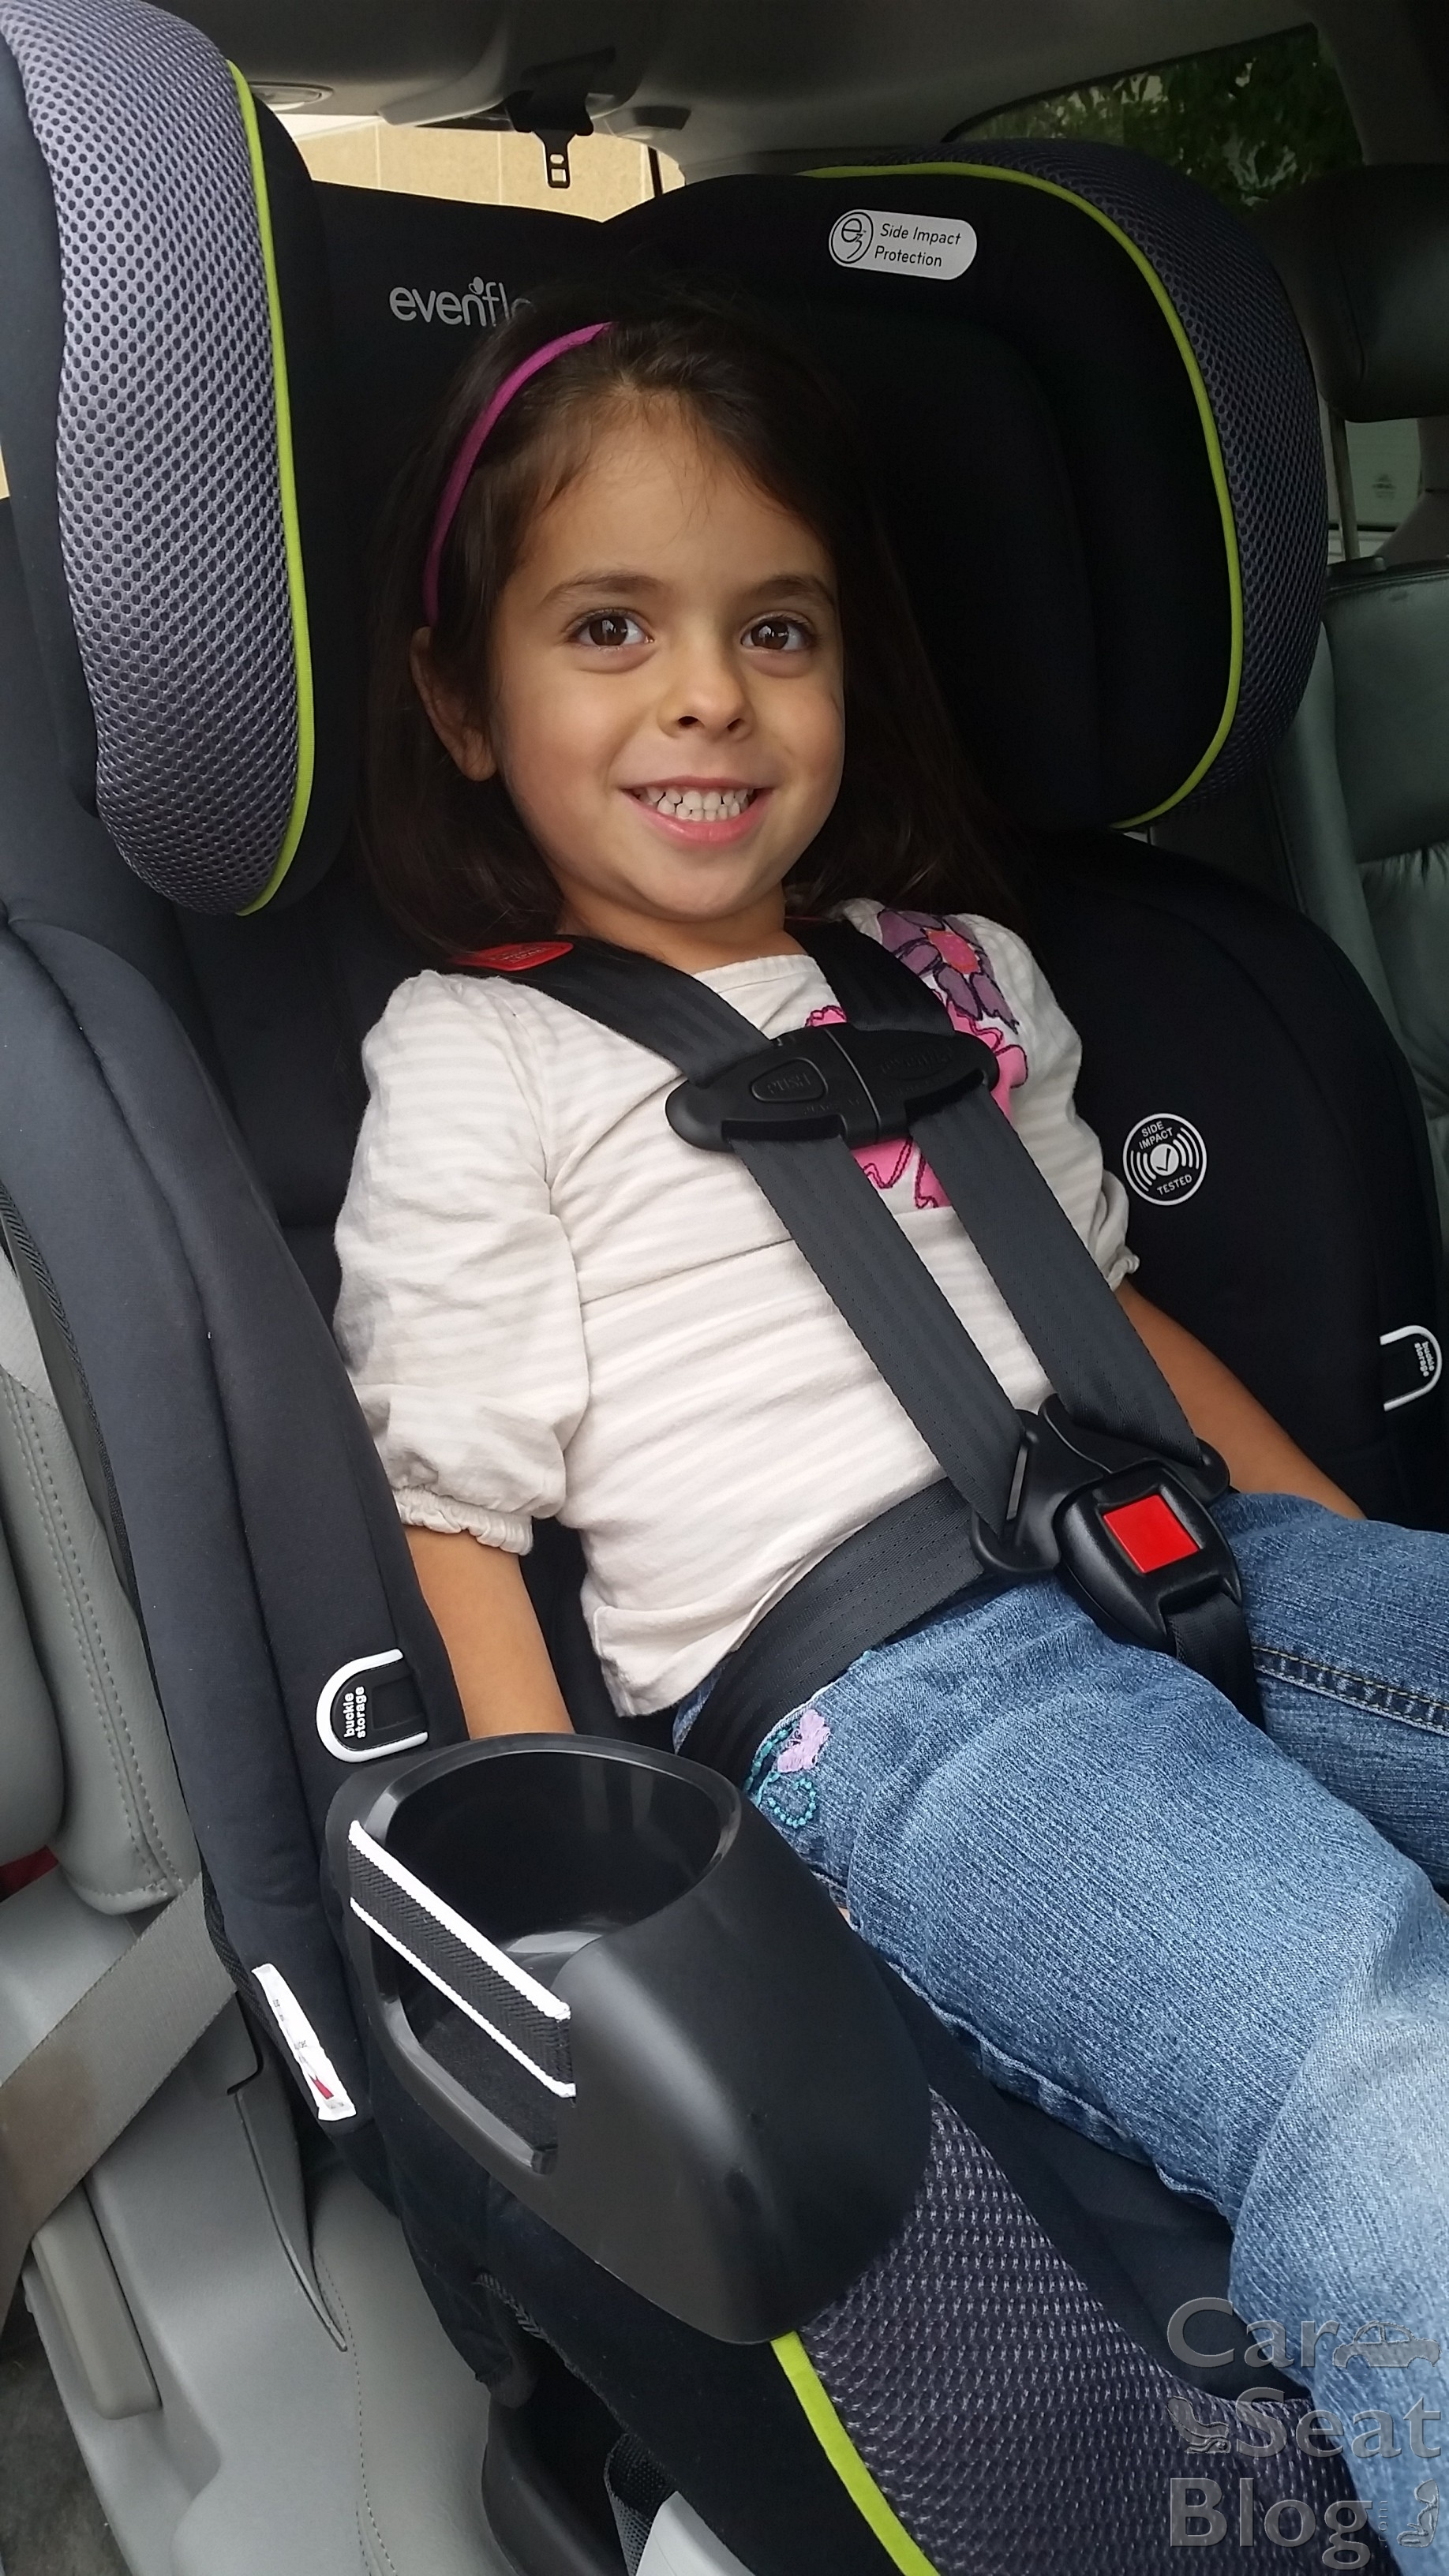 evenflo car seat belt instructions